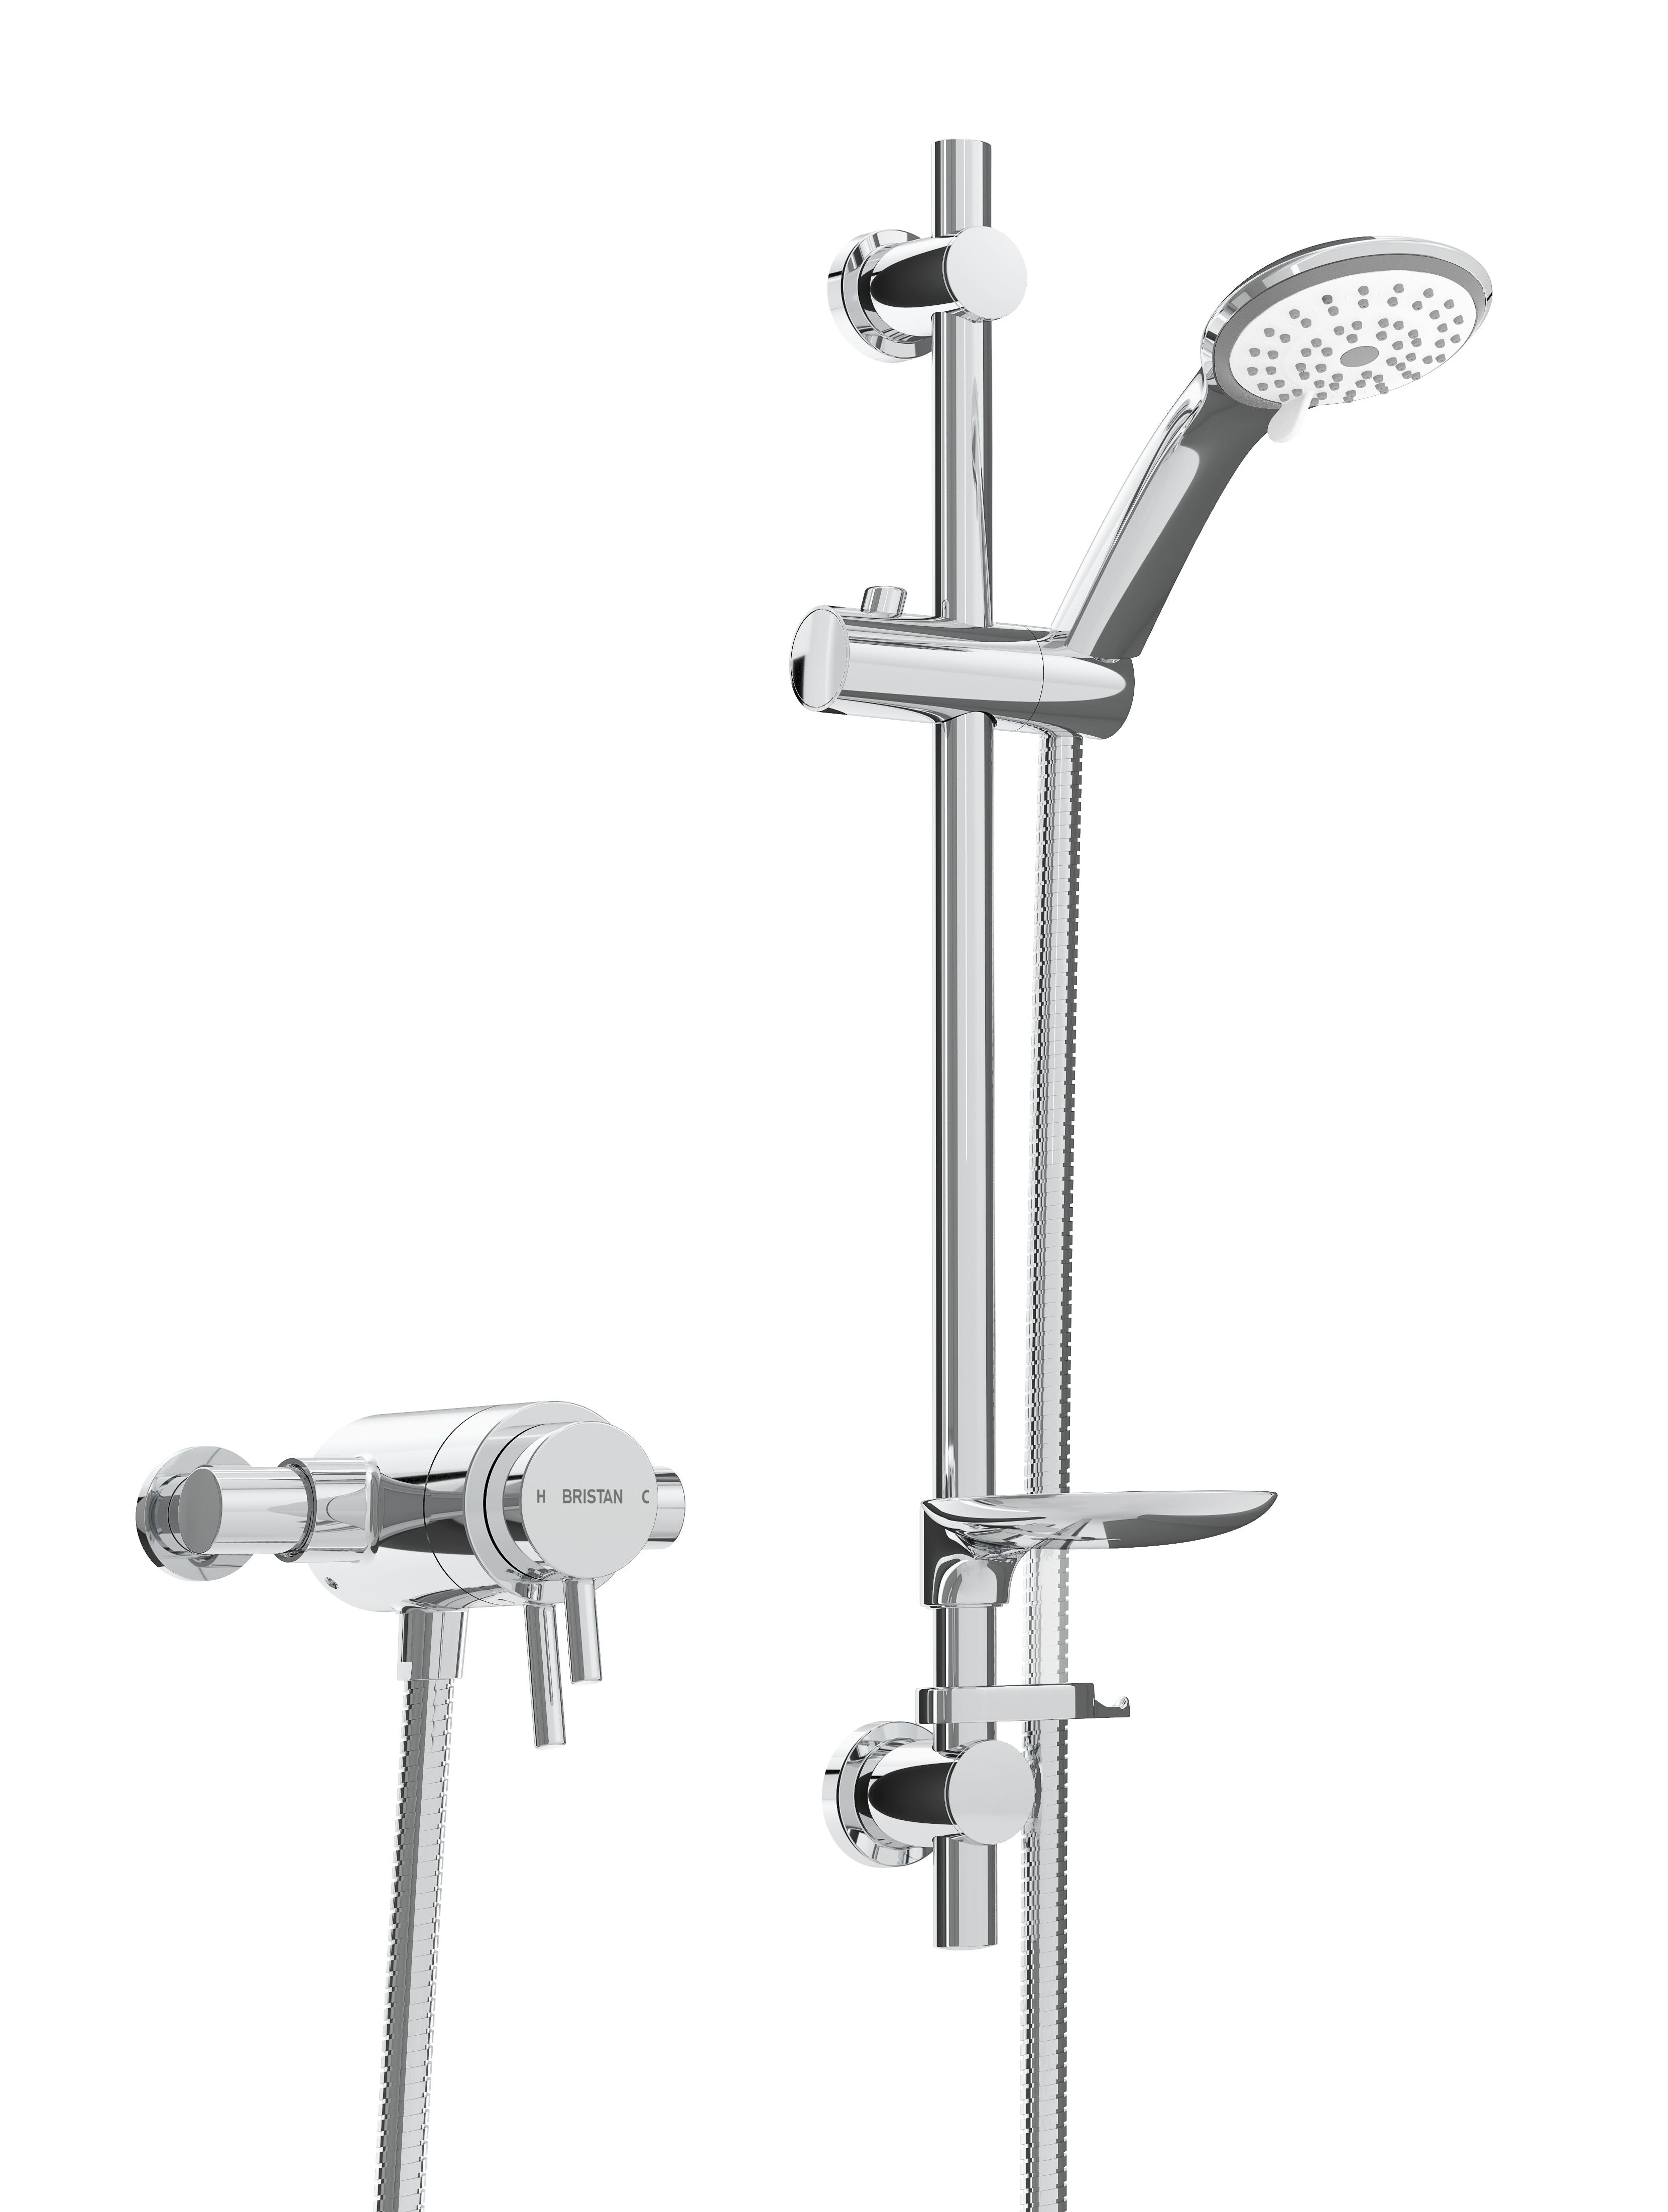 BRISTAN PRISM THERMOSTATIC EXPOSED DUAL CONTROL SHOWER VALVE WITH ADJUSTABLE RISER KIT - PM2 CSHXAR C